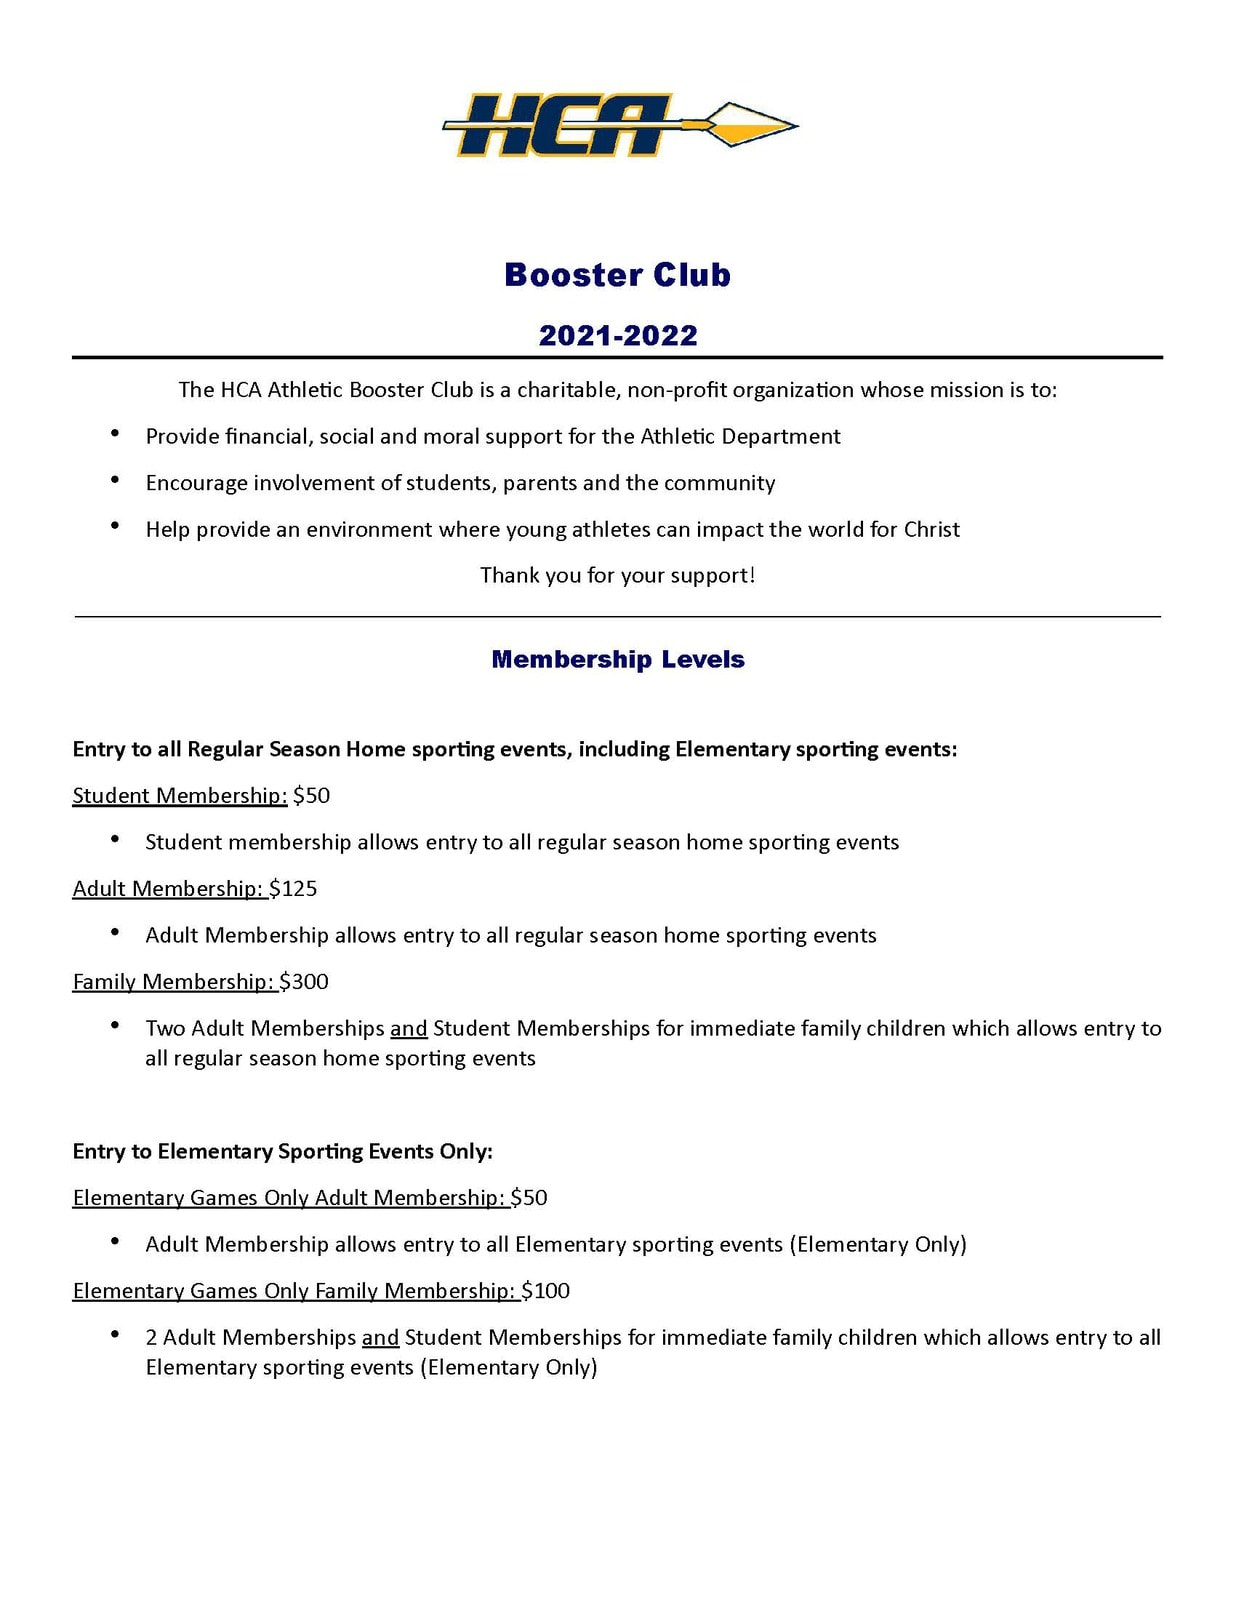 Booster Club Membership Form 2021-2022 edited_Page_1